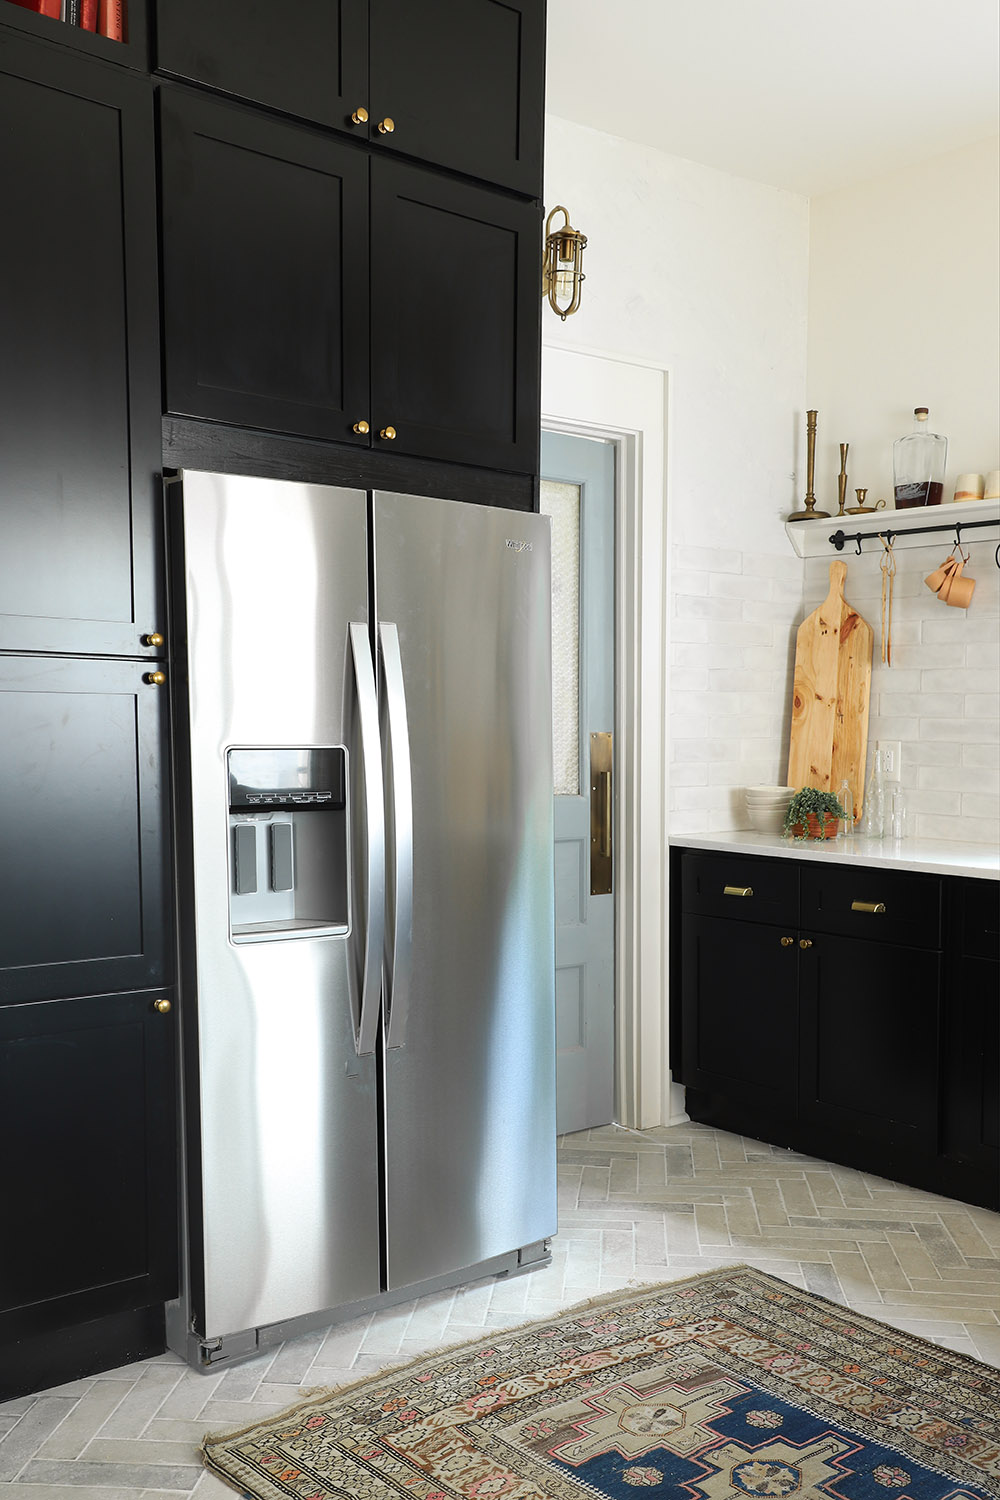 A counter-depth stainless steel refrigerator nestled between black cabinets.